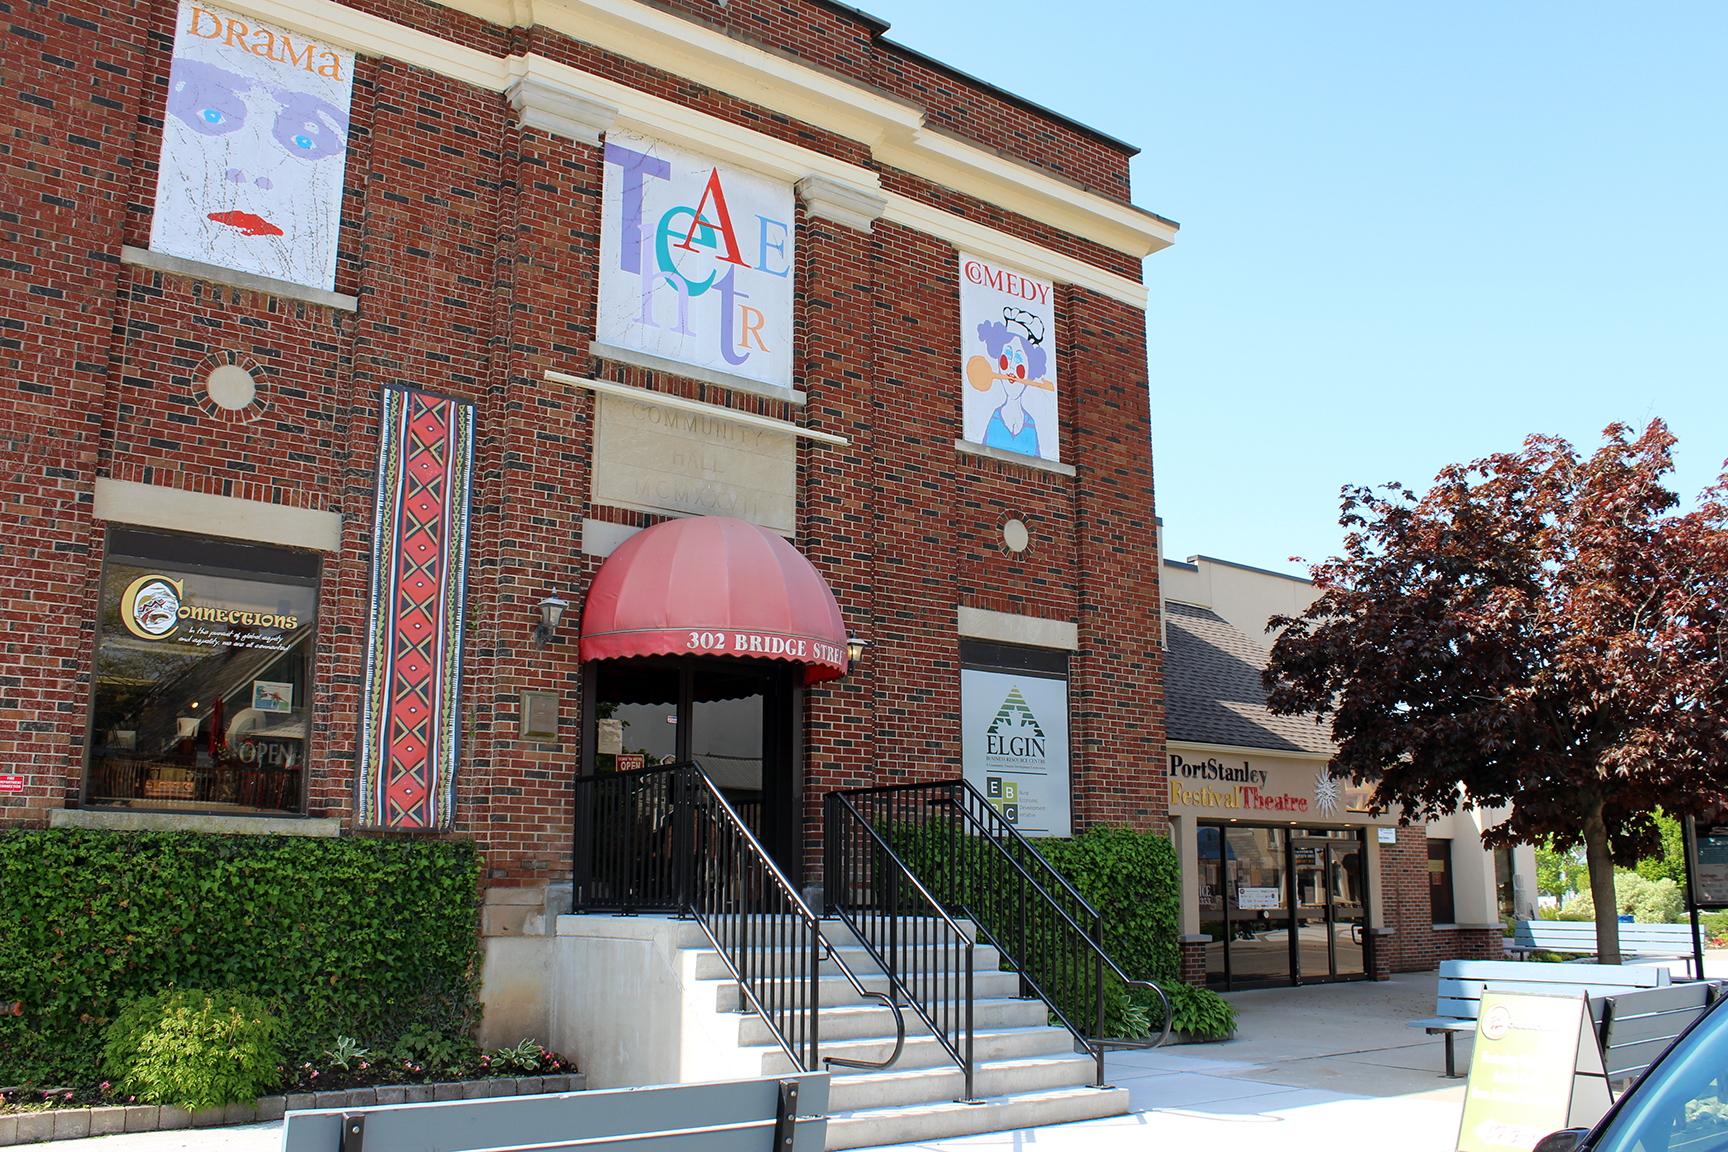 Port Stanley Festival Theatre 2019 Season